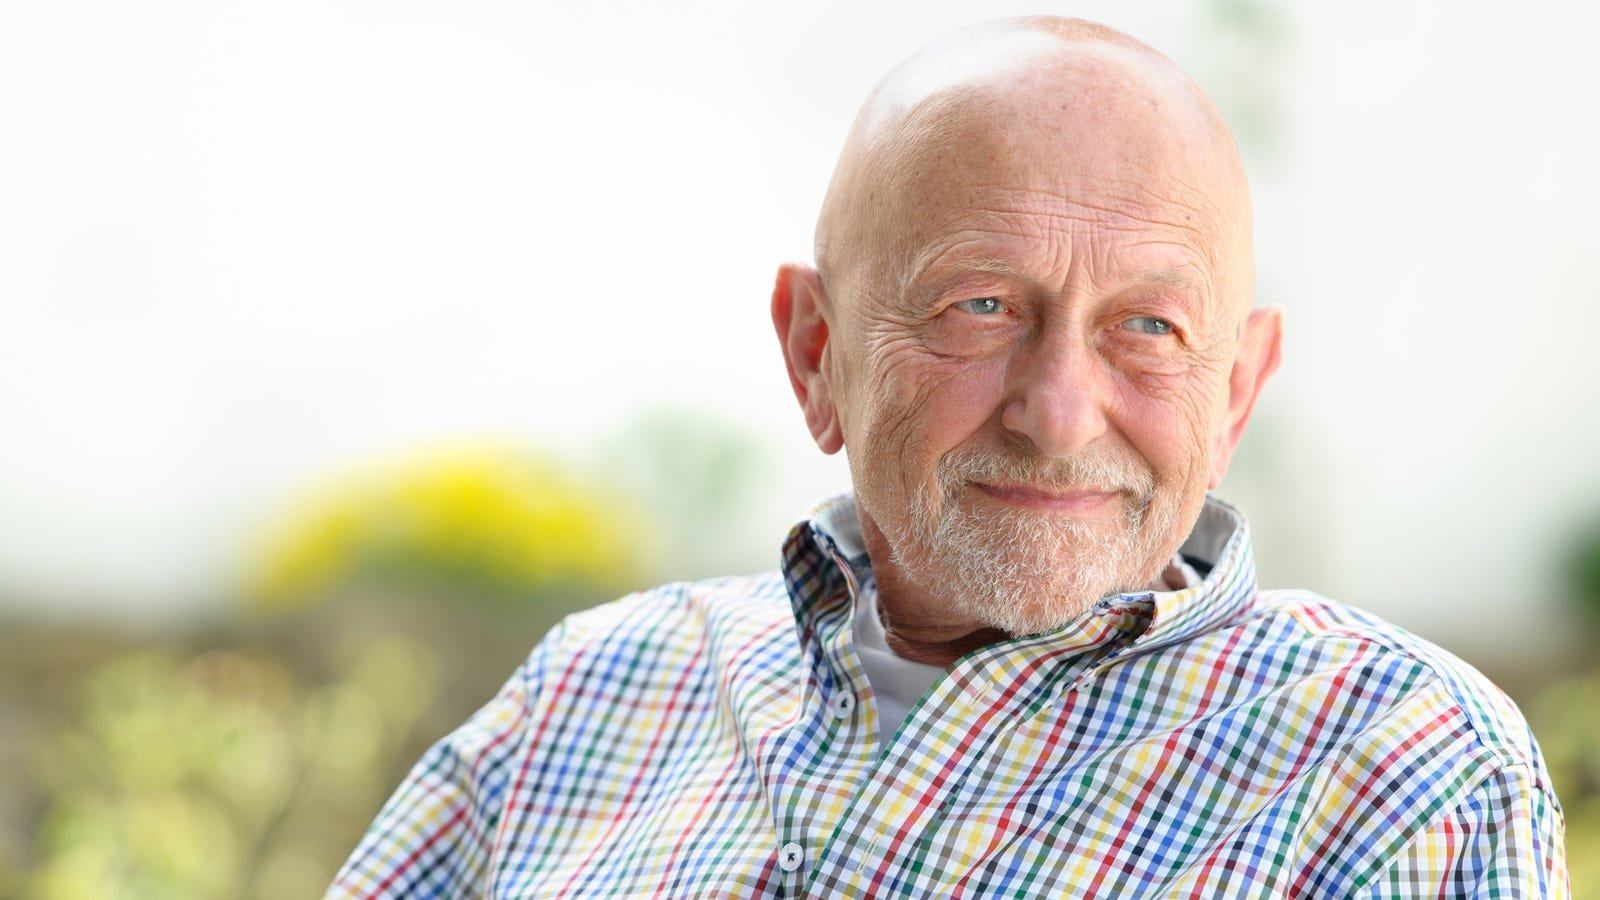 Dad Reaches Age Where It's No Longer Enjoyable To Make Fun Of How Old He Is